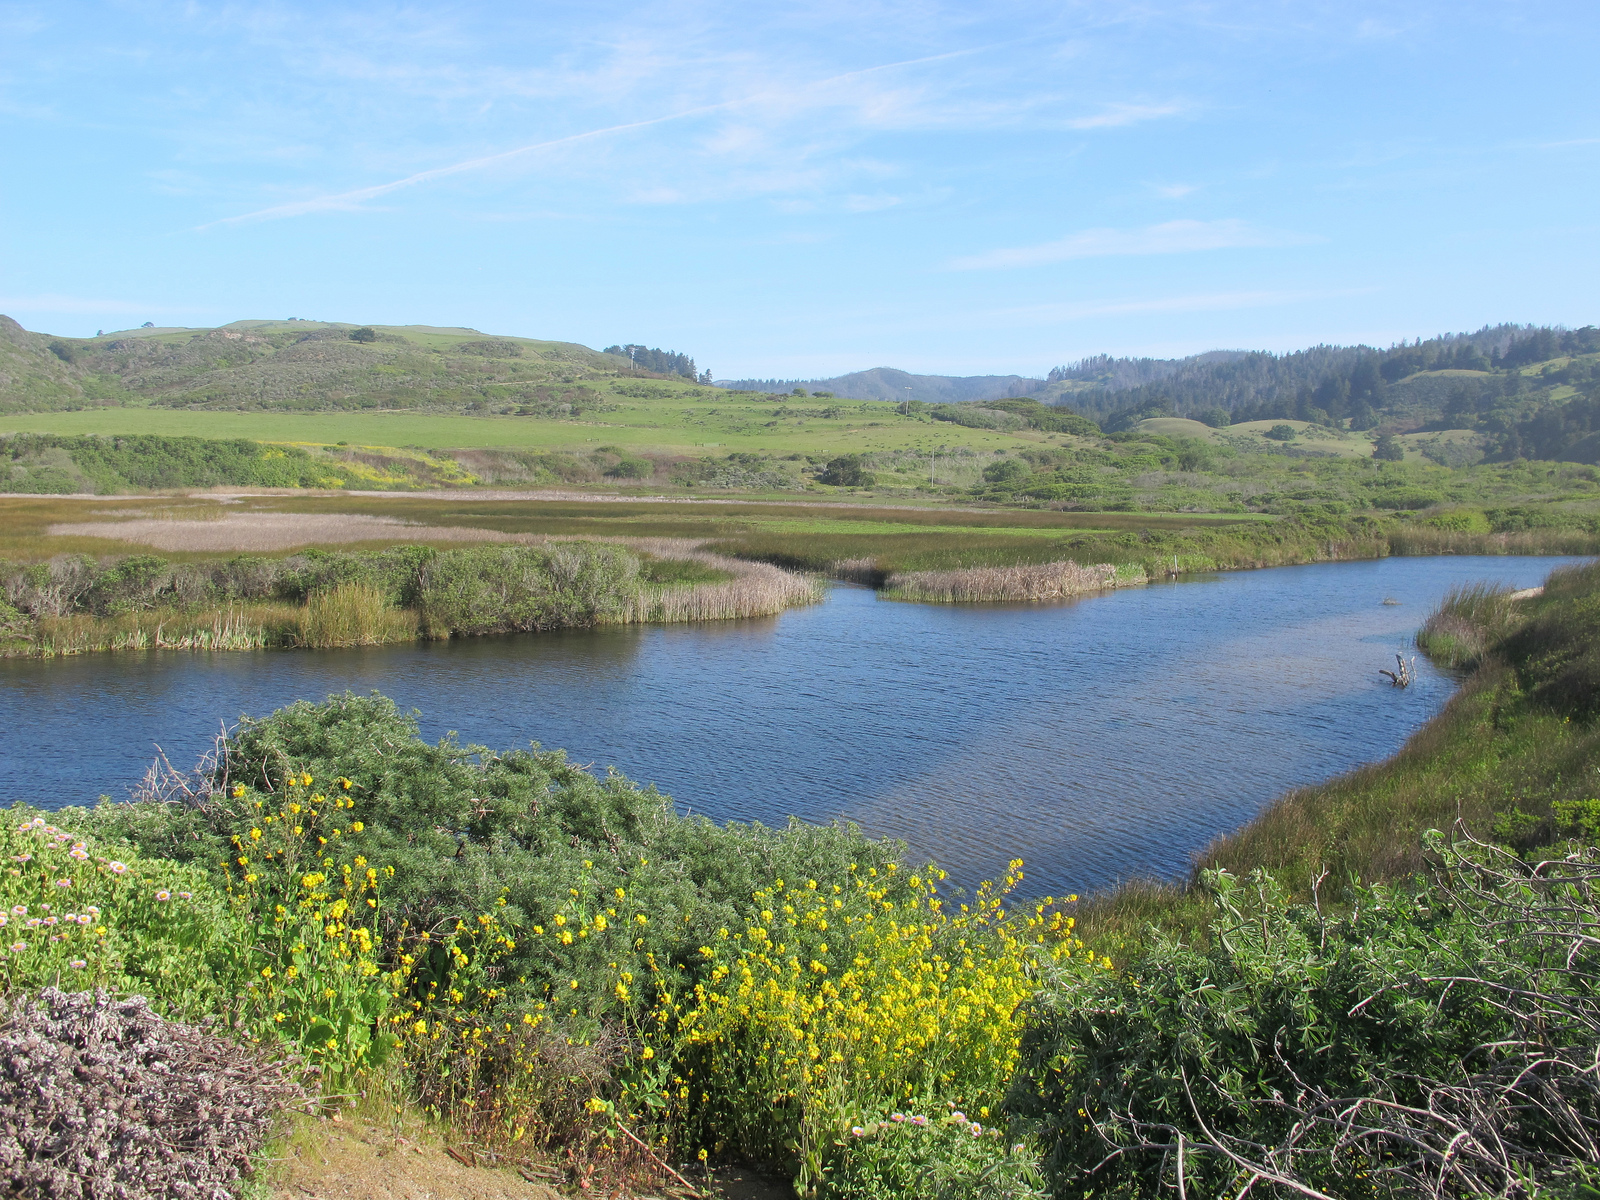 Scott creek estuary